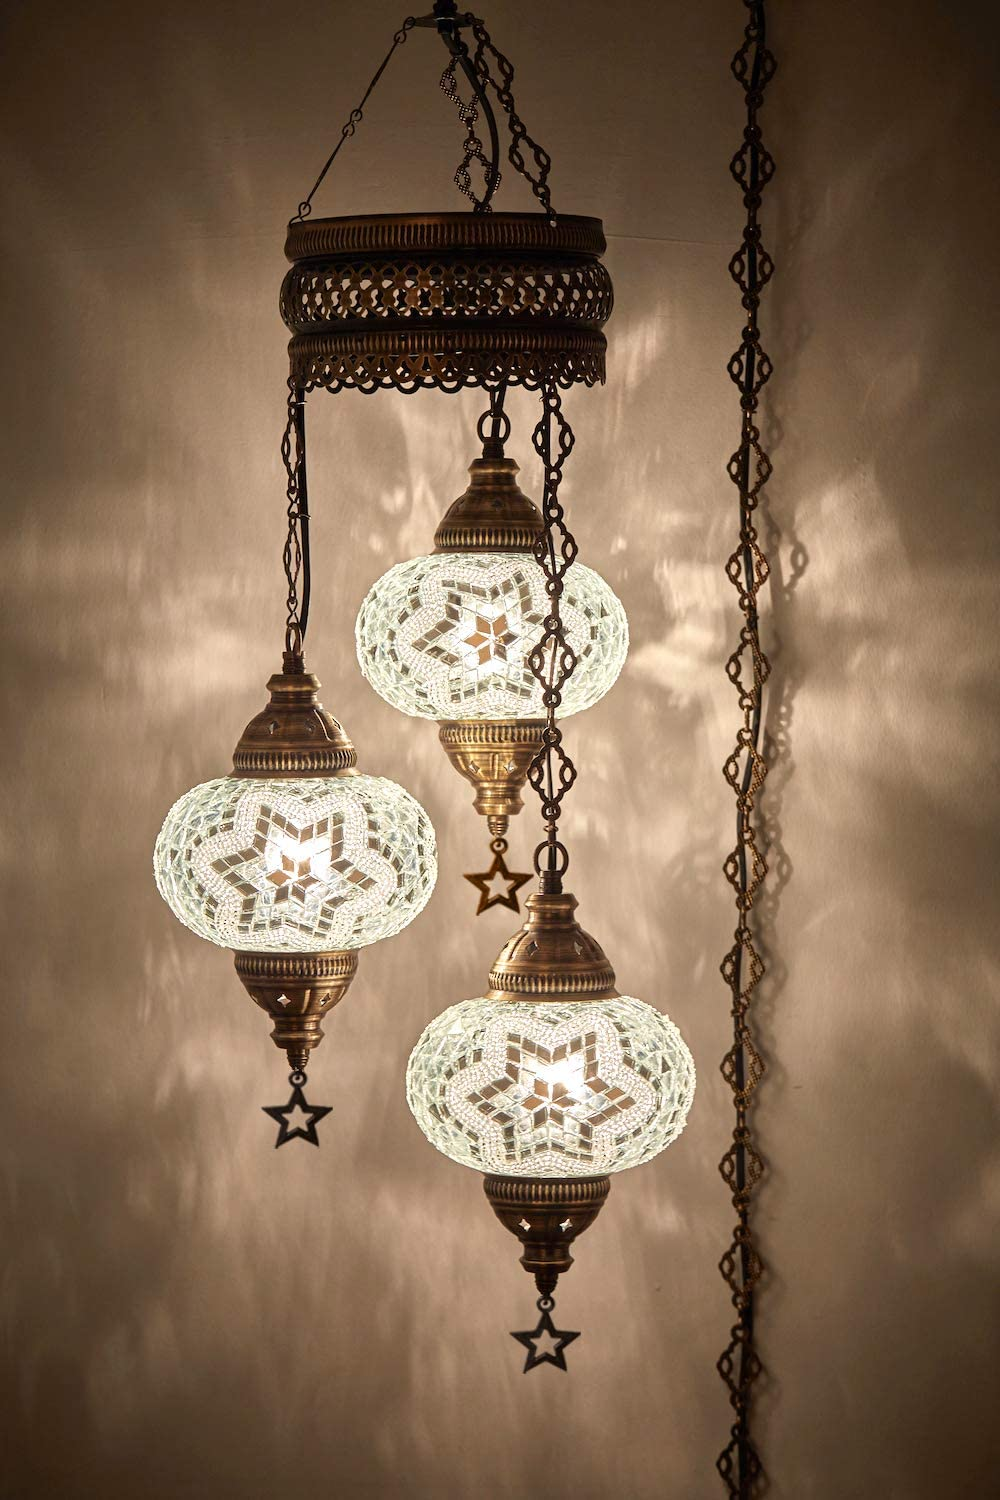 Demmex Turkish Moroccan Mosaic Hardwired Or Swag Wall Plug In Chandelier Light Ceiling Hanging Lamp Pendant Fixture 3 X 6 5 Globes Swag Amazon Com